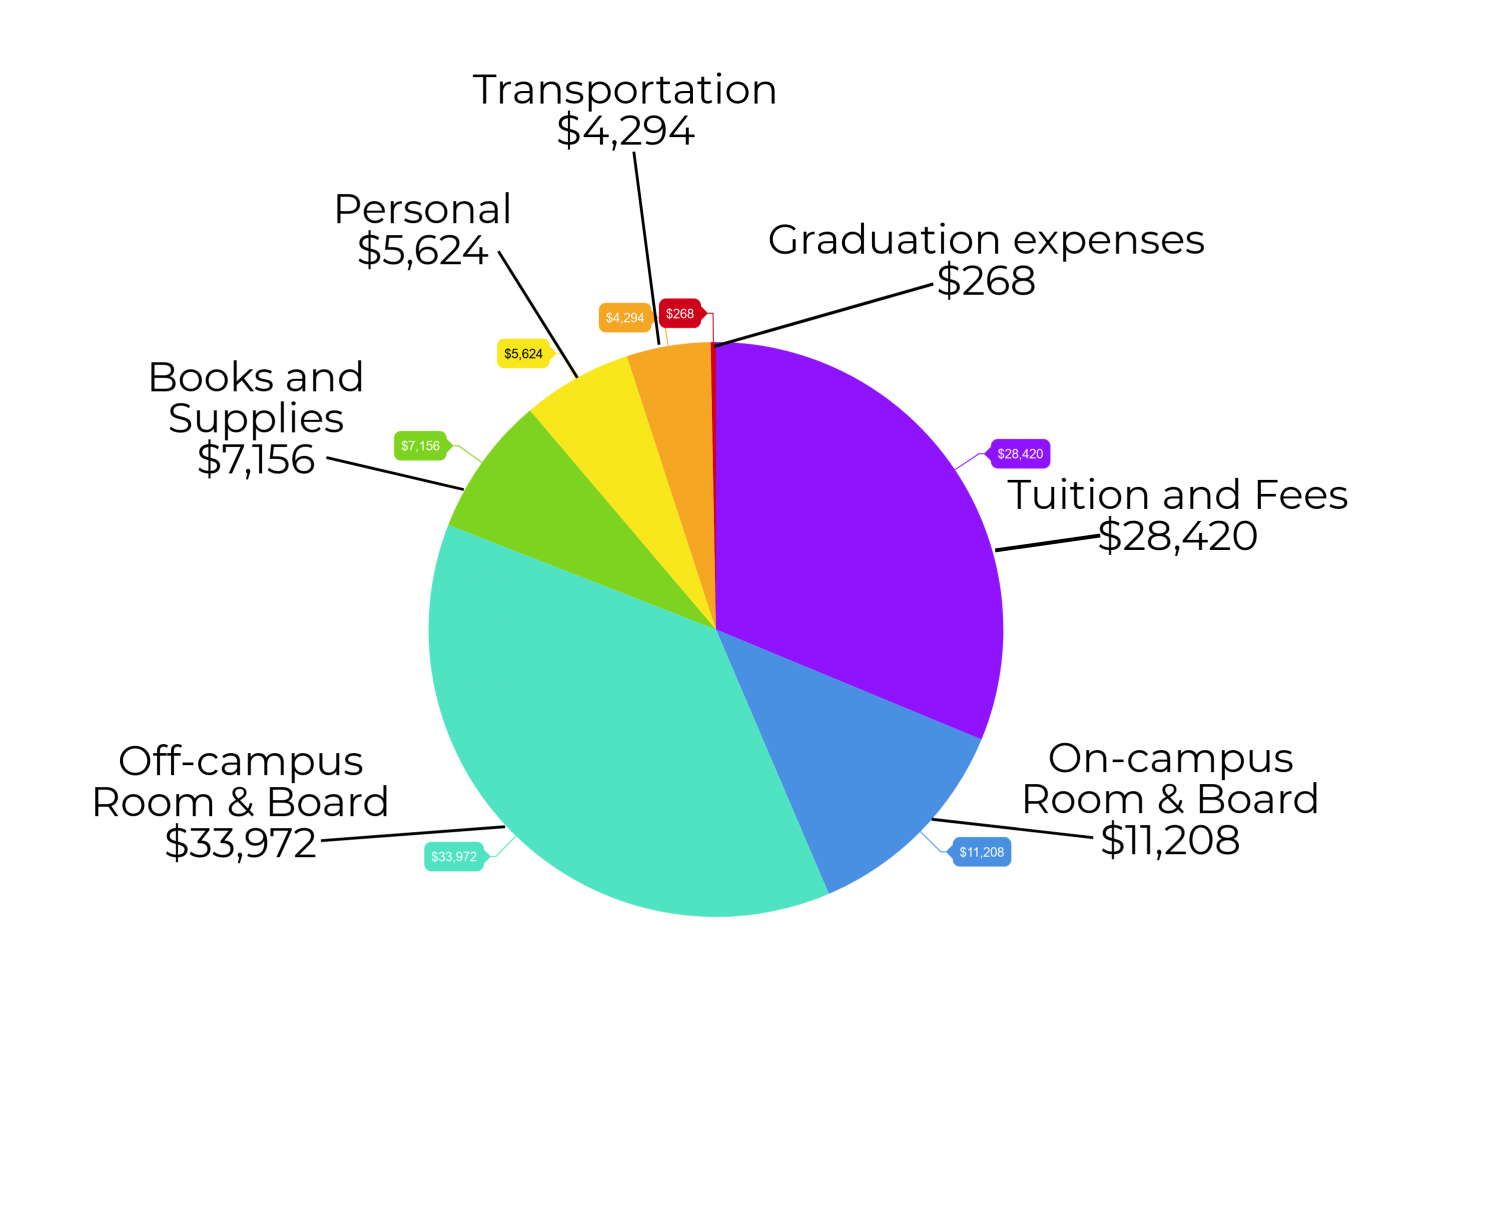 This chart is based on estimates from Chico State's Financial Aid and Scholarship office. Without factoring in financial aid, the average total cost of a degree for an in-state student is about $90,000